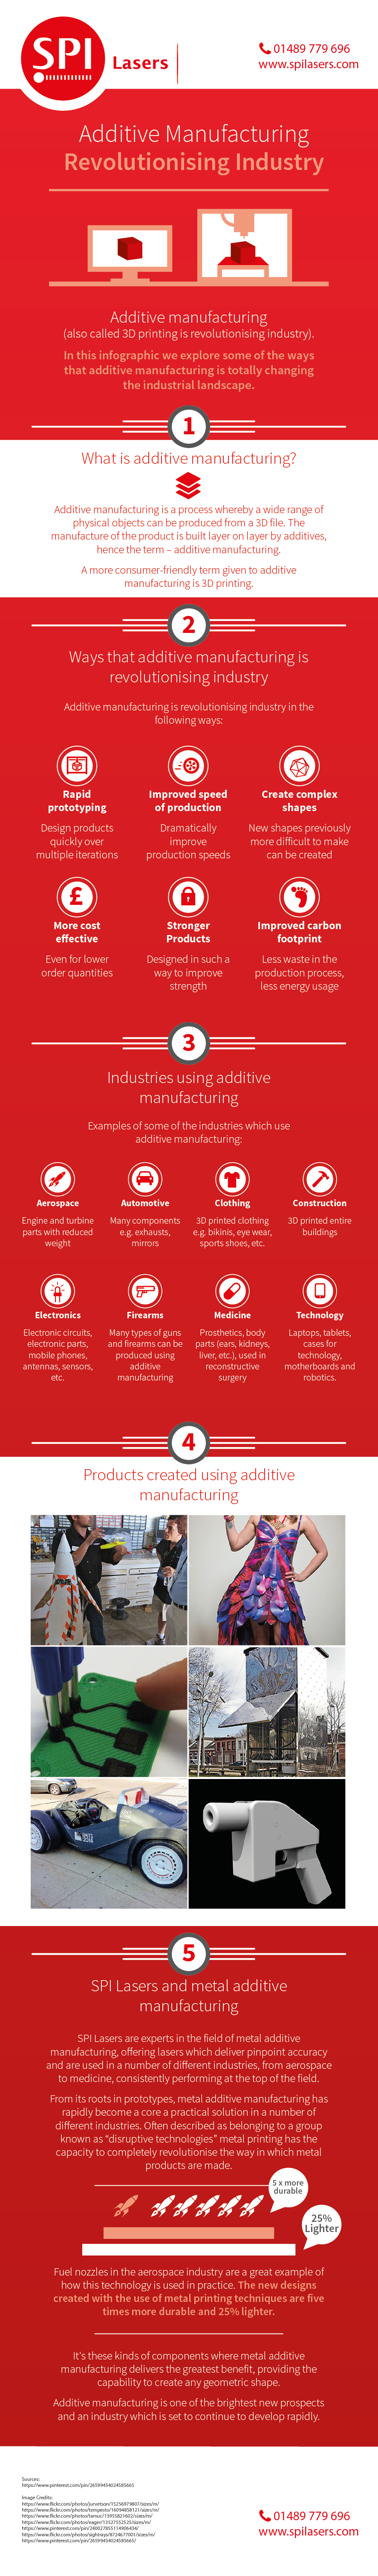 Additive Manufacturing: Revolutionizing Industry Infographic from SPI Lasers